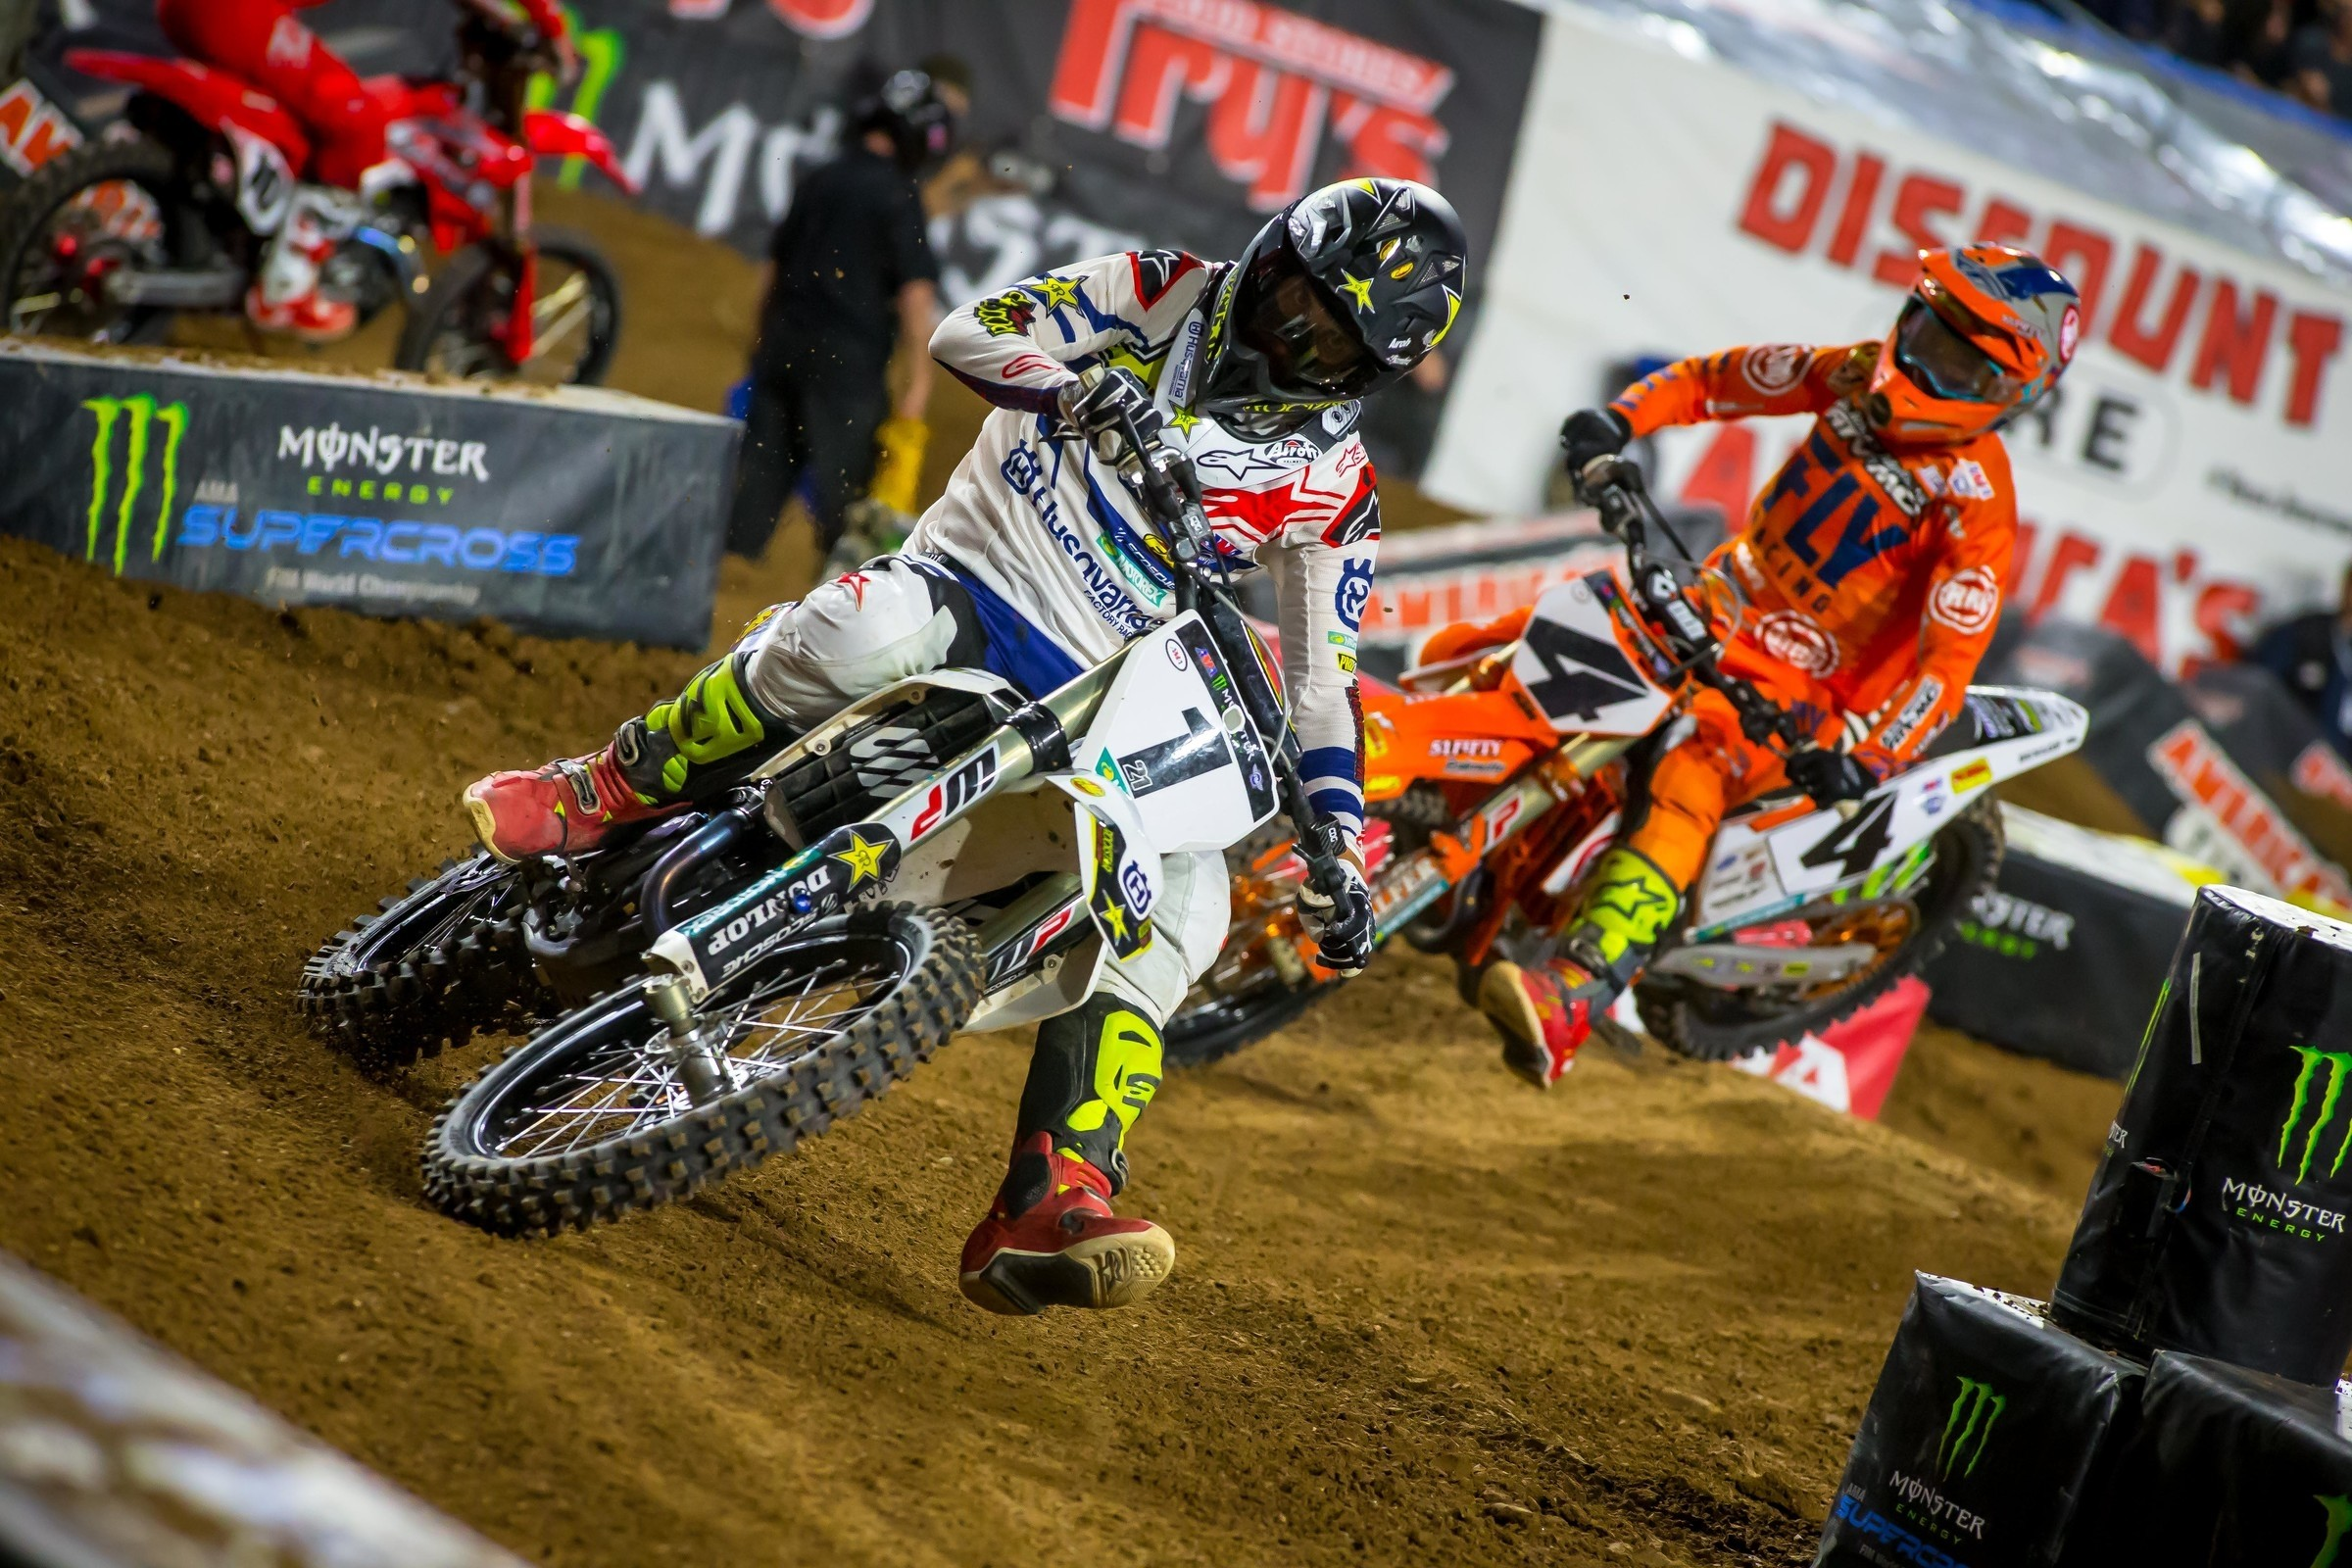 Glendale SX Highlights